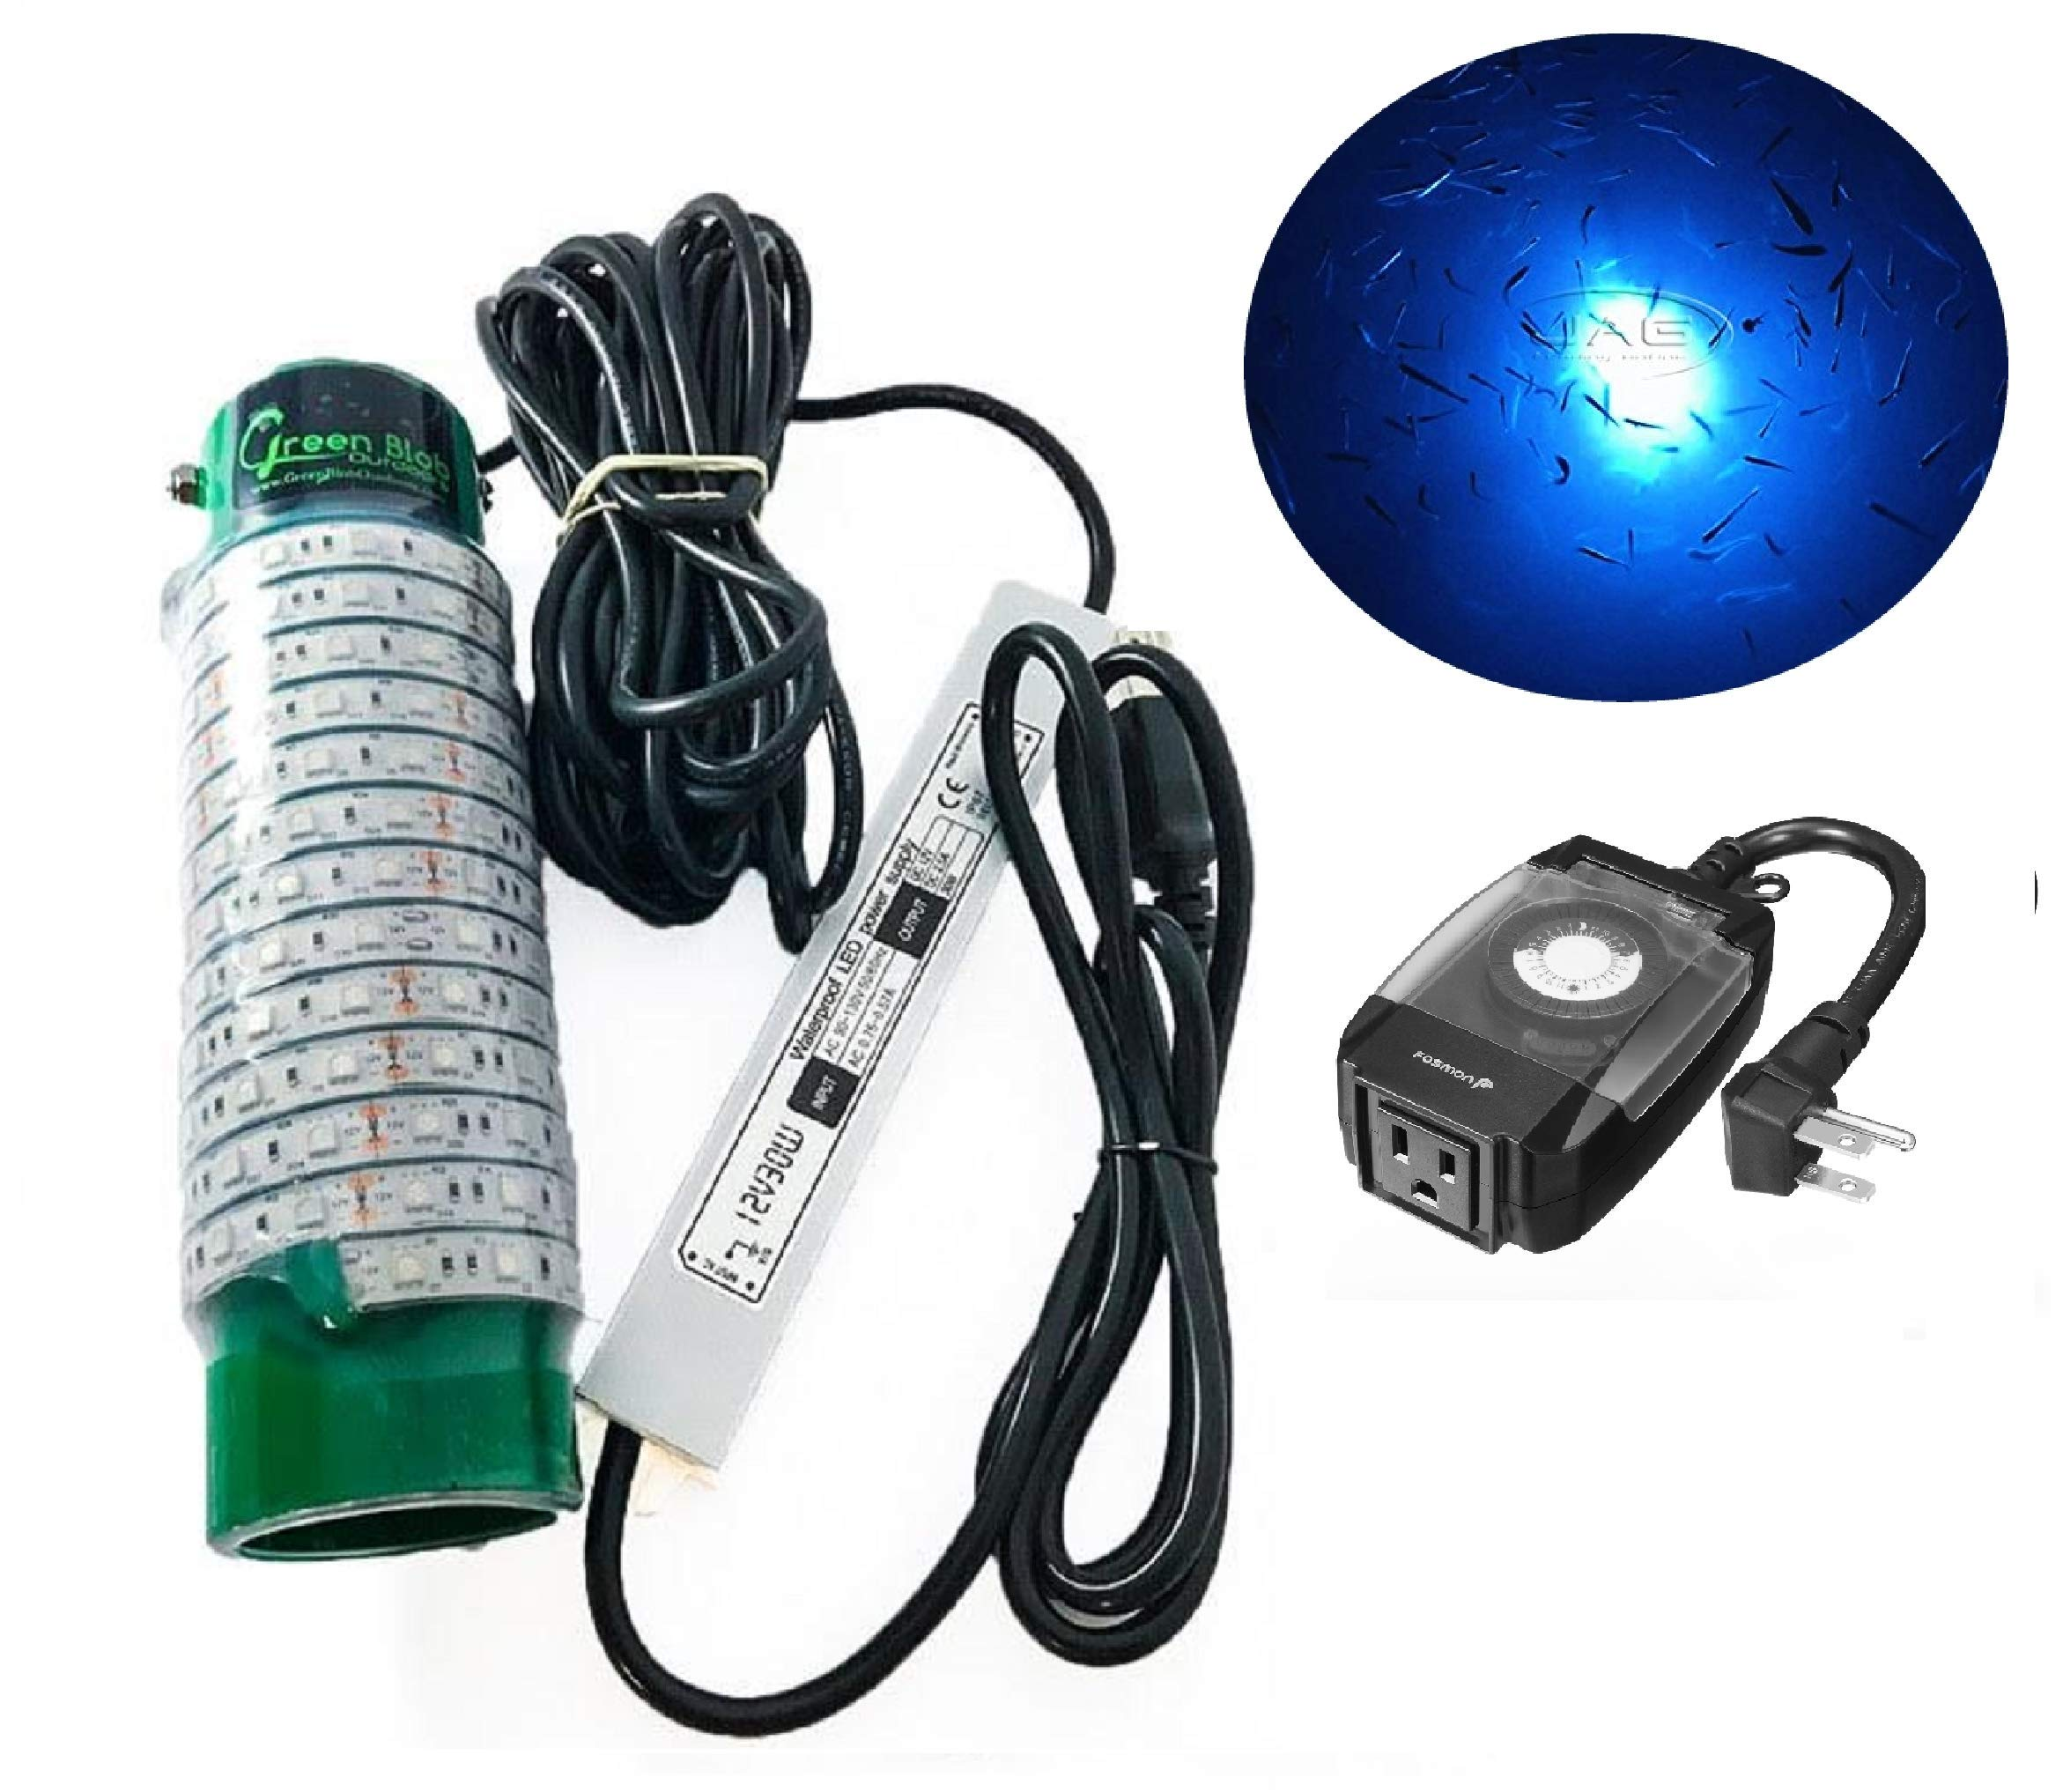 (Green, Blue, or White) Blob Underwater LED Night Fishing Light DOCK-7500 110volt AC (with Timer) 30ft Cord Fish Finding System, Bait rig, Fish Attractor, Ponds, Snook (Blue with Timer)